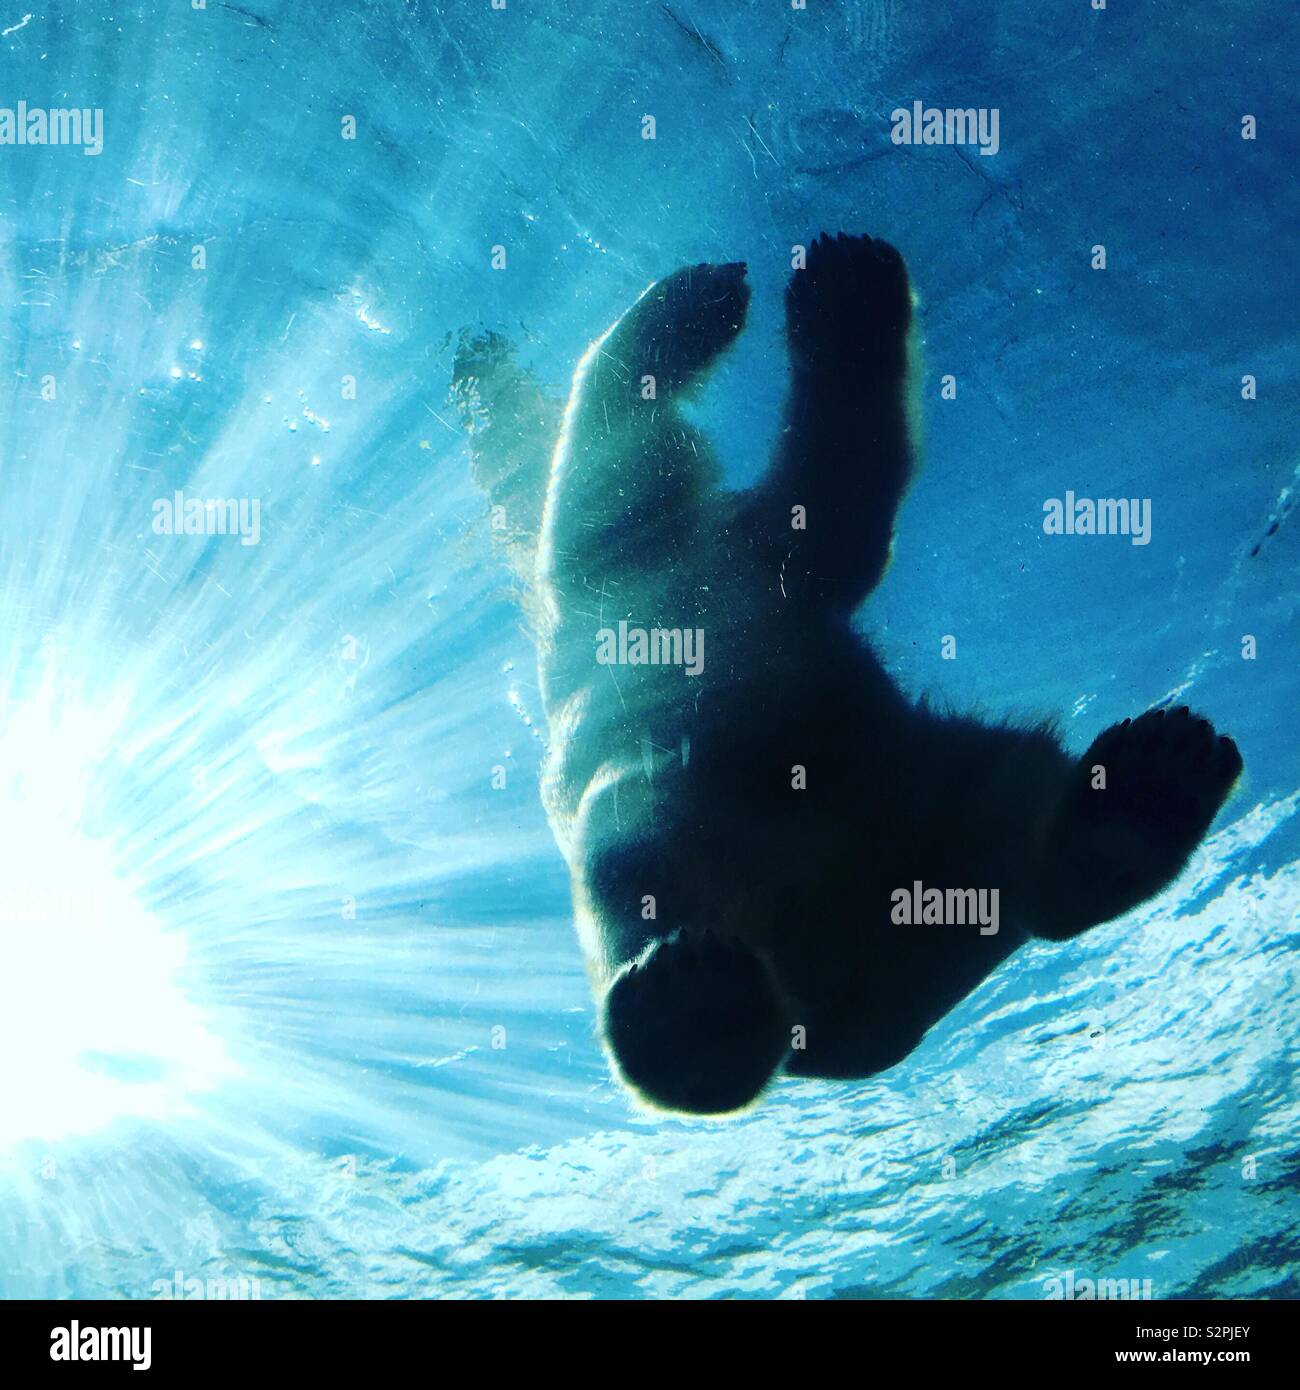 Ein Eisbär, Gegenlicht der Sonne, steht auf der Spitze eine klare Anzeige Galerie der Pool noch in der Arktis Frontier Exponat der Columbus Zoo in Columbus, Ohio, USA. Stockfoto